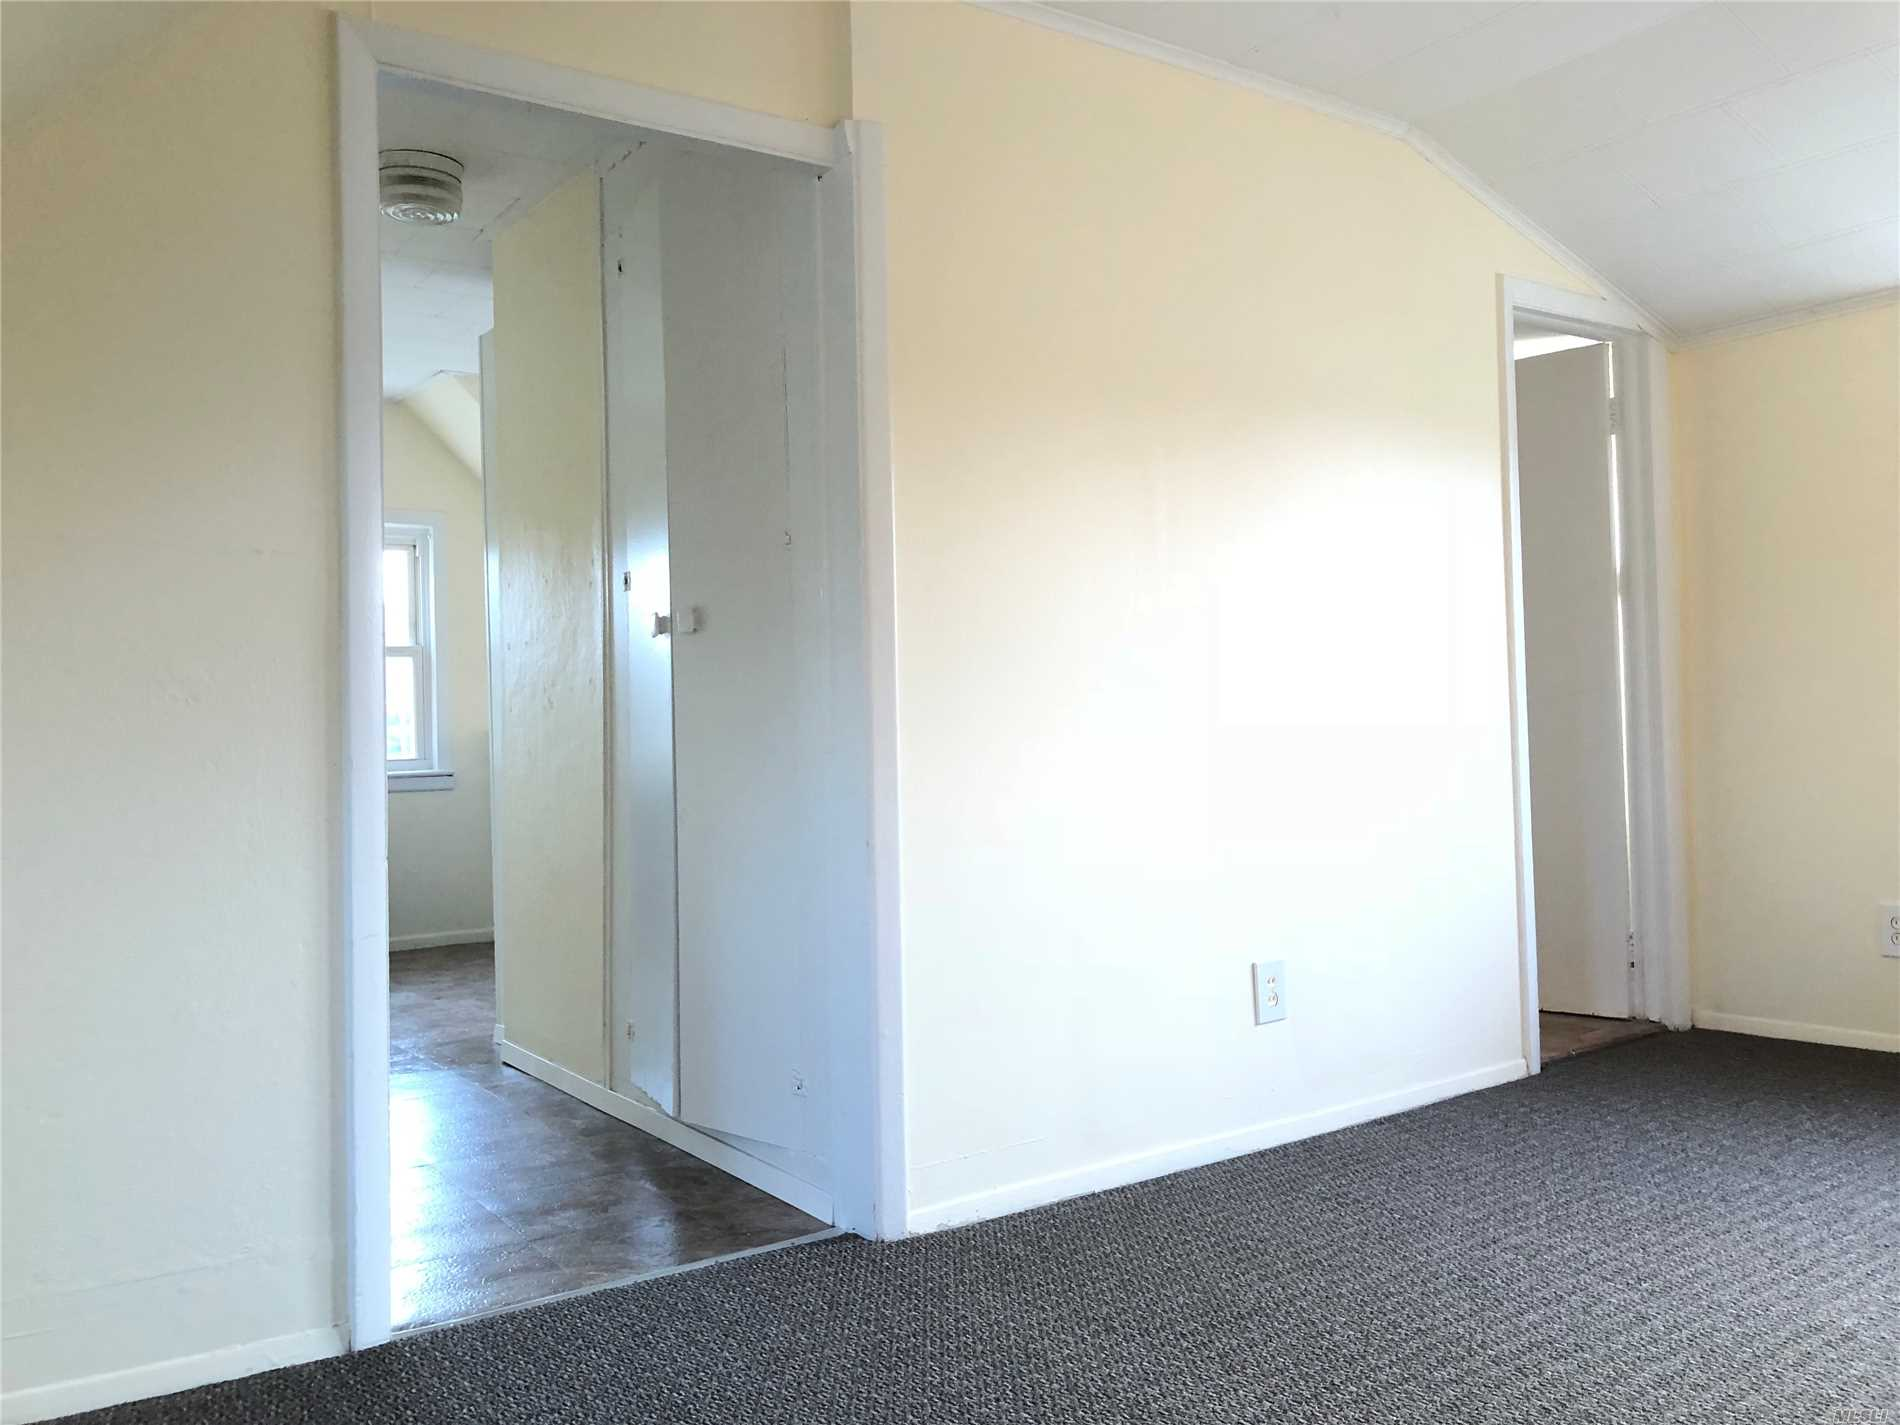 One Bedroom Apartment On 3rd Floor, Also Offers An Eat In Kitchen, Full Bath And Nice Size Living Room.